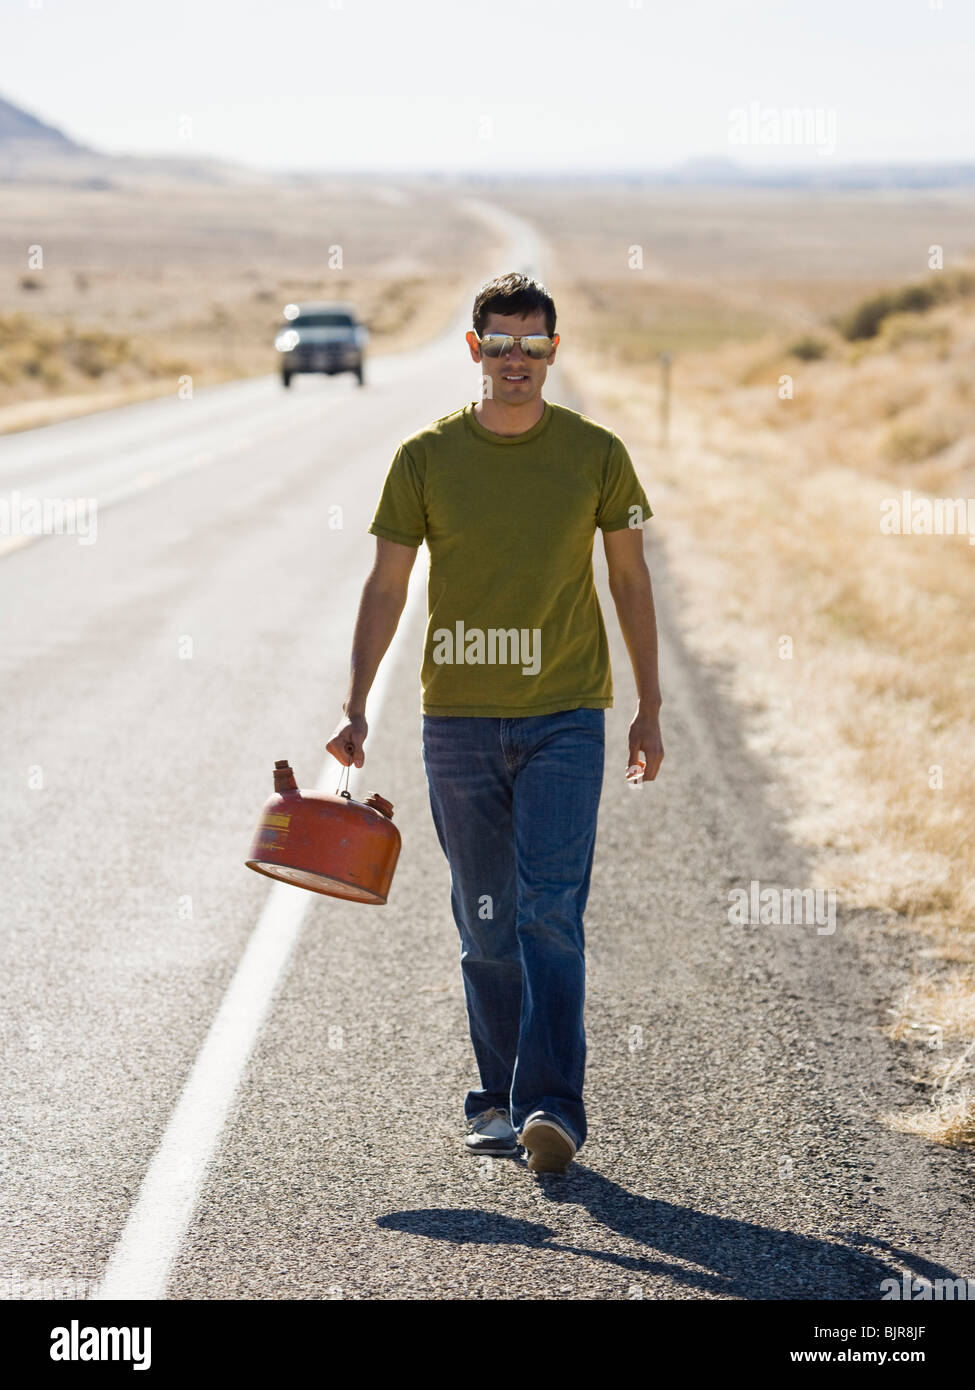 man walking with a gas can - Stock Image